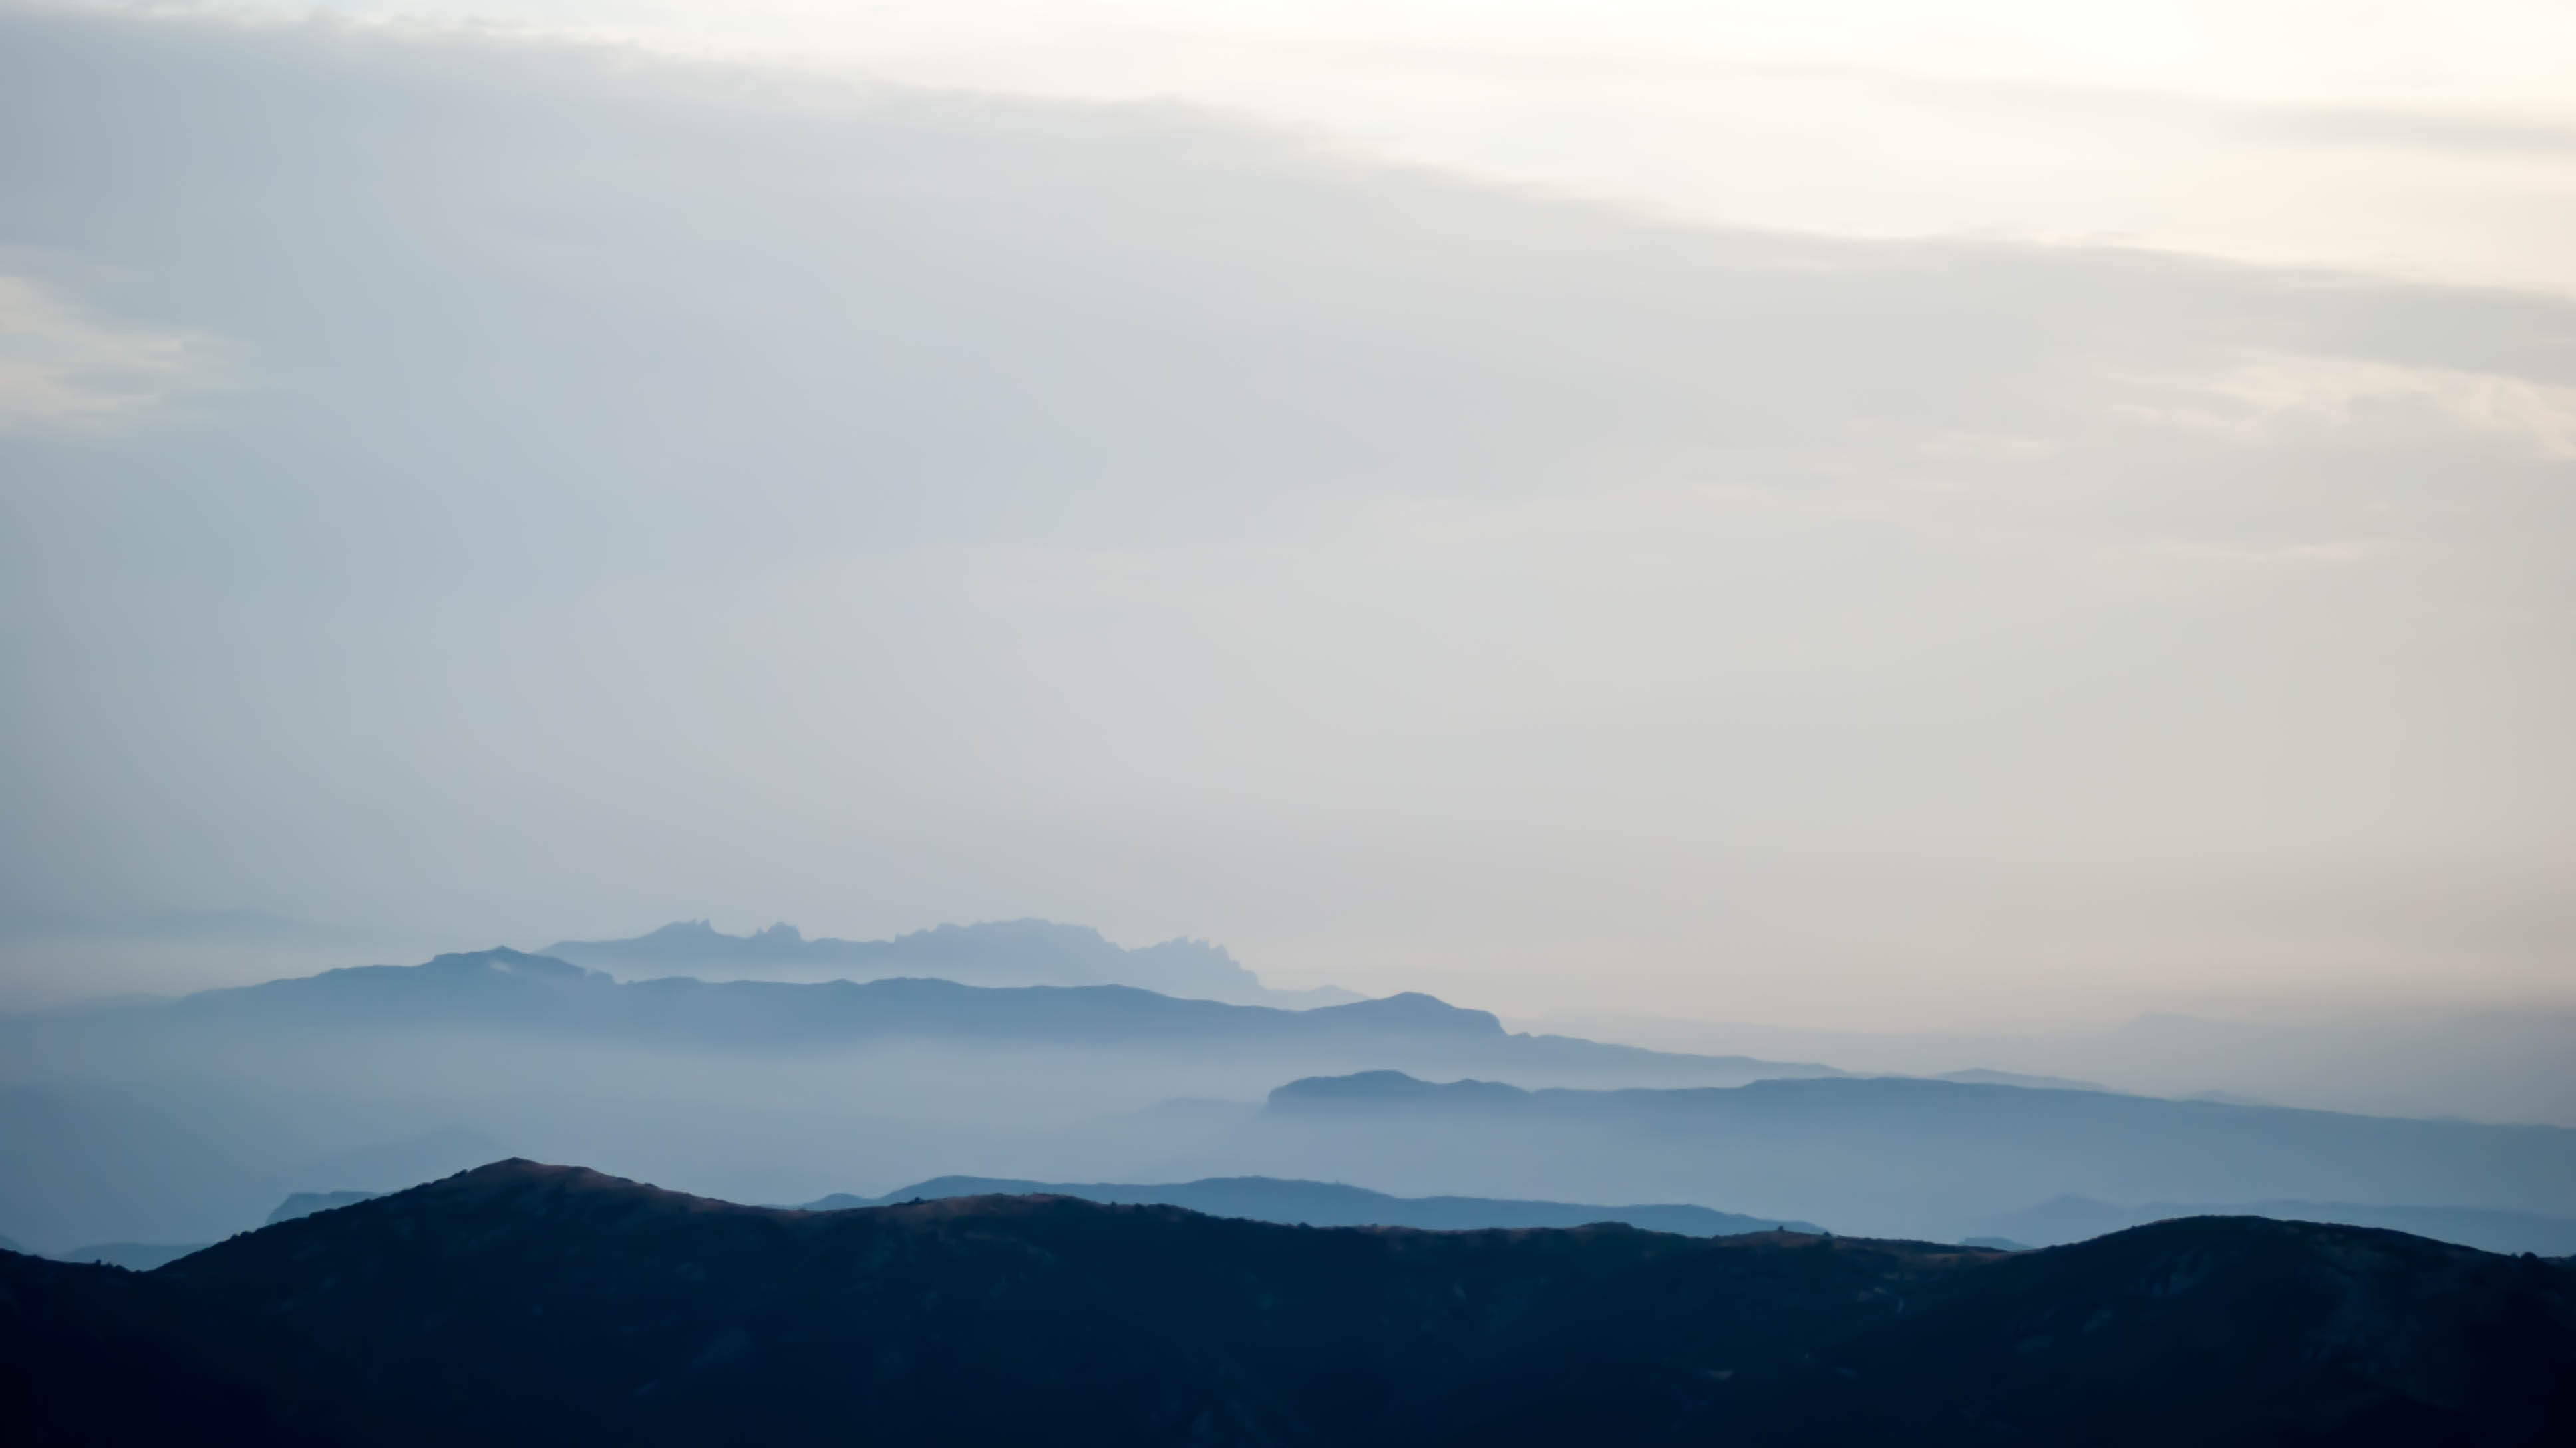 Hazy silhouettes of mountain ridges on a foggy day